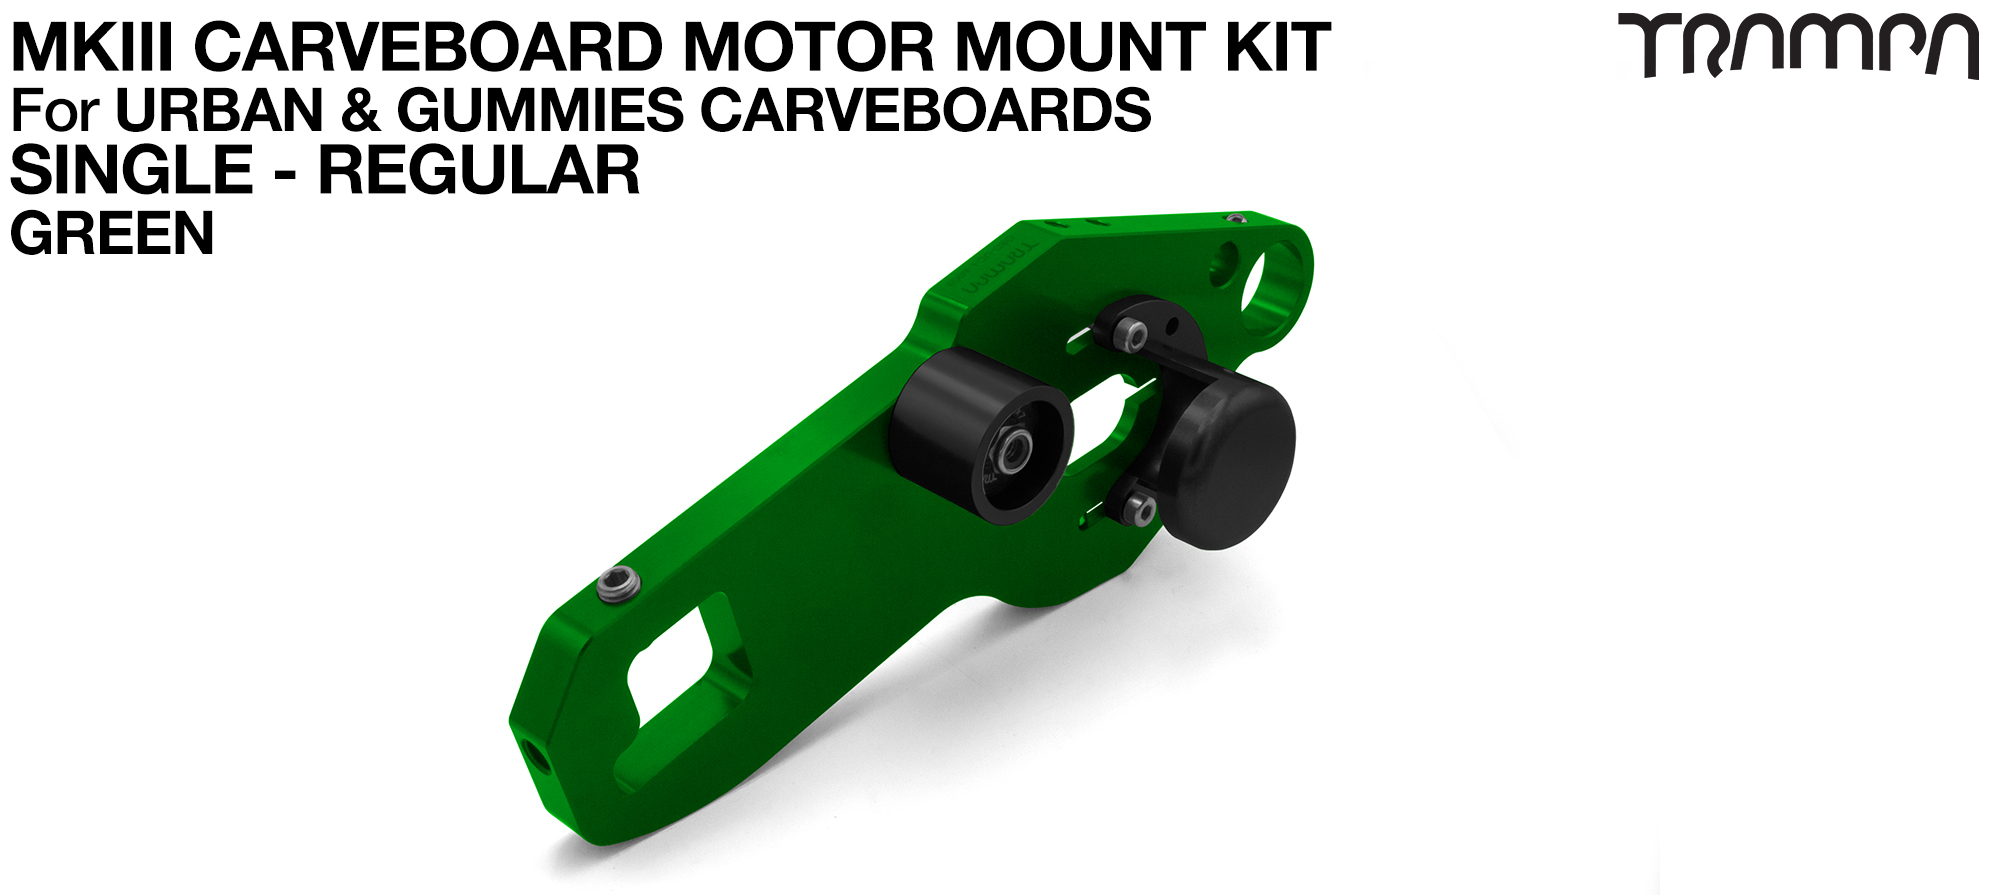 MkIII CARVE BOARD Motor Mount Kit - SINGLE GREEN